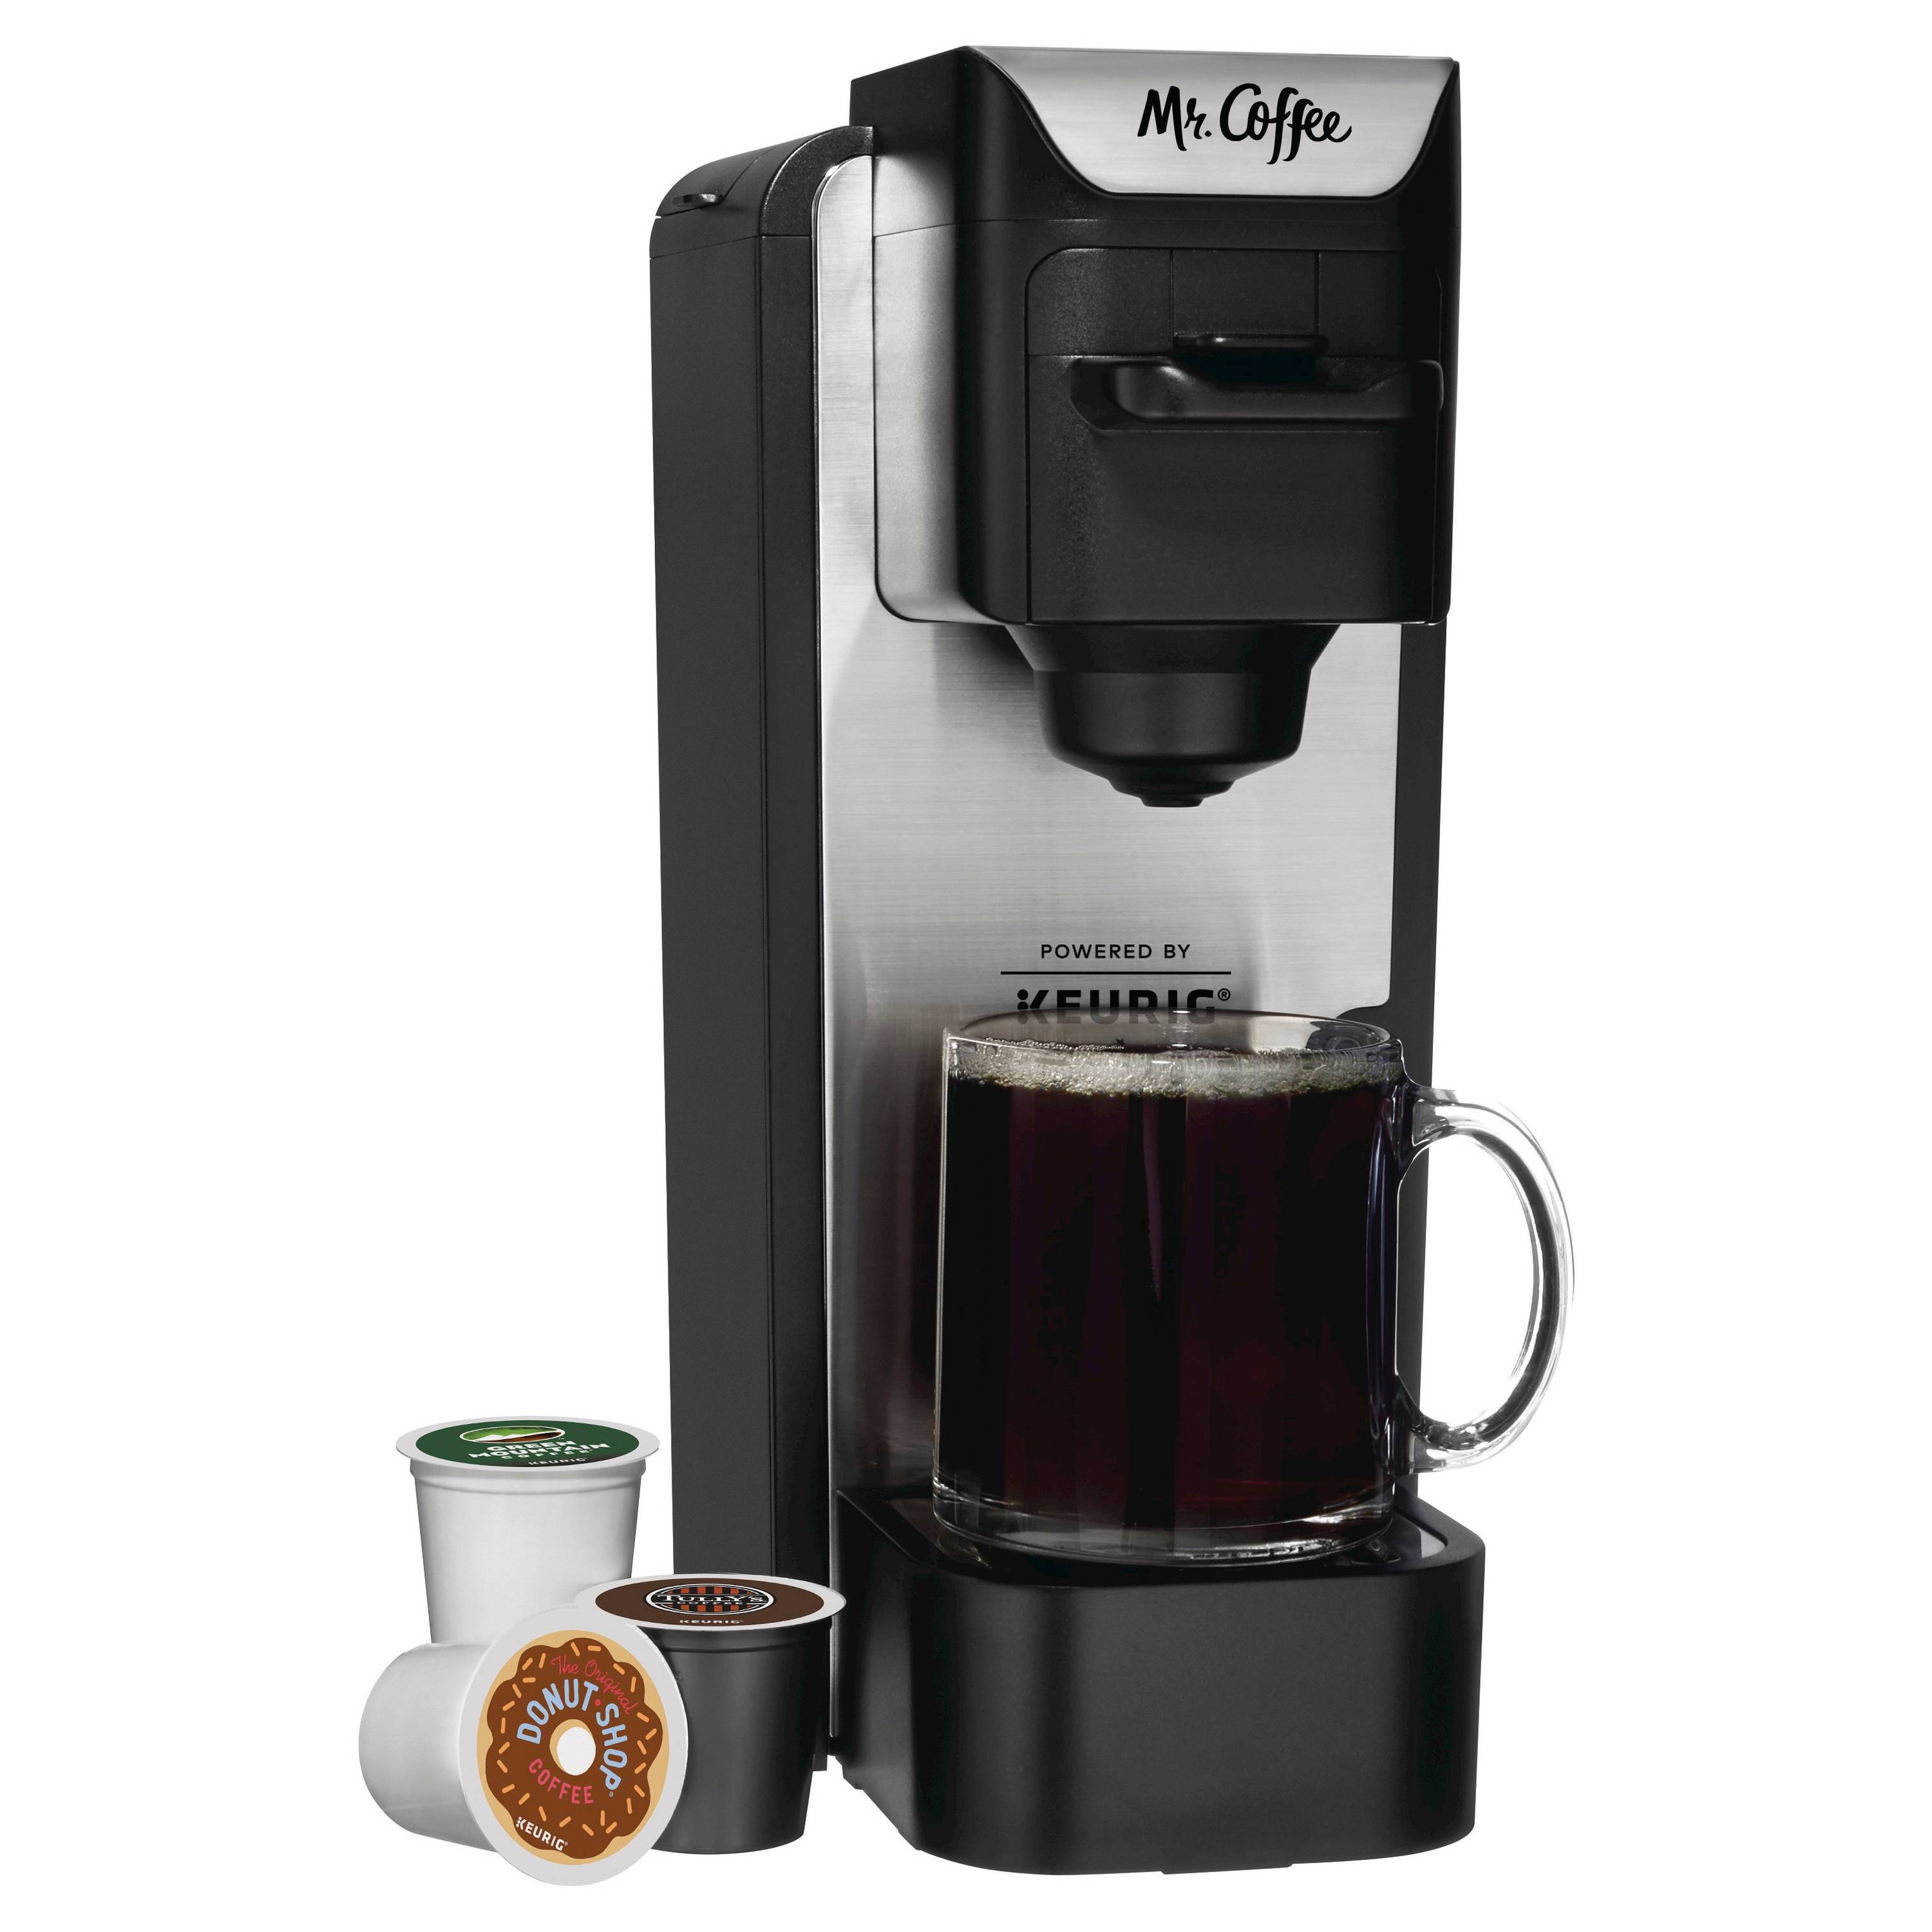 K Cup Coffee Maker Deals : Mr. Coffee Single Cup K-Cup Coffee Maker USD 34.99 - Wheel N Deal Mama